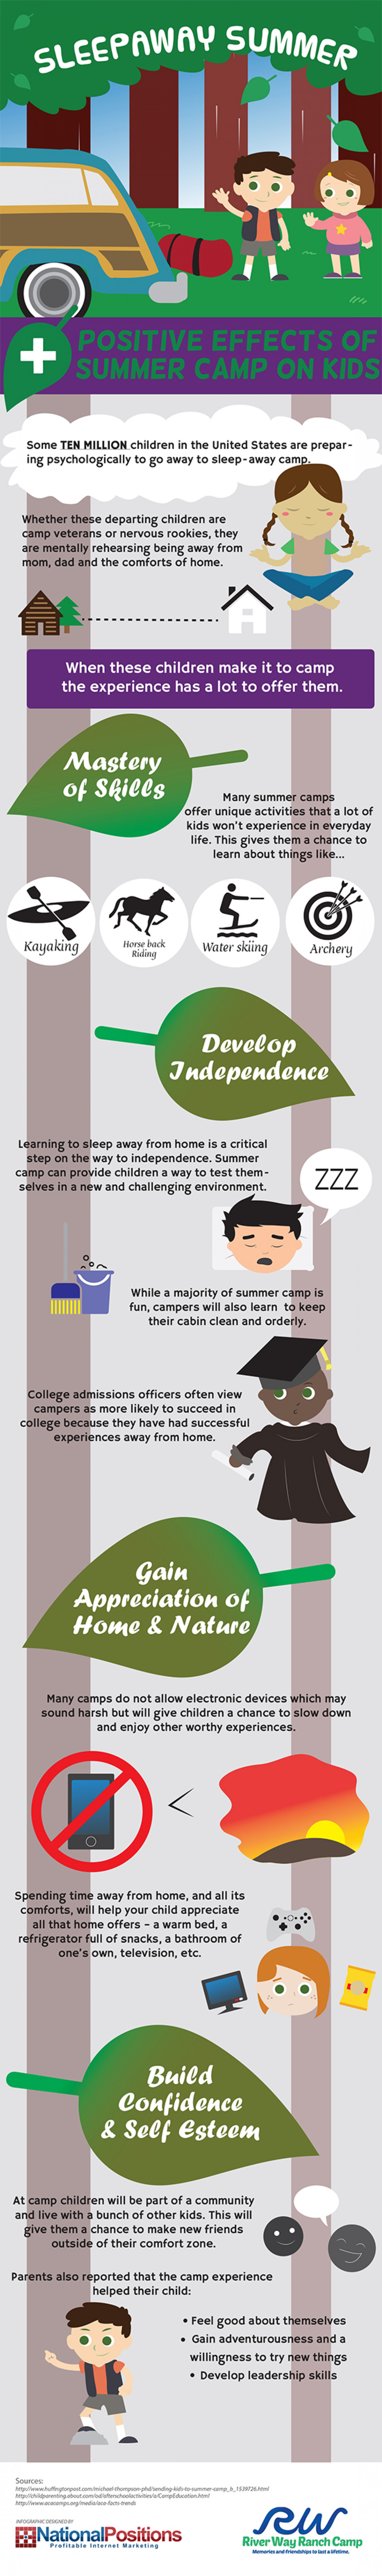 Sleepaway Summer: Positive Effects of Summer Camp on Kids Infographic